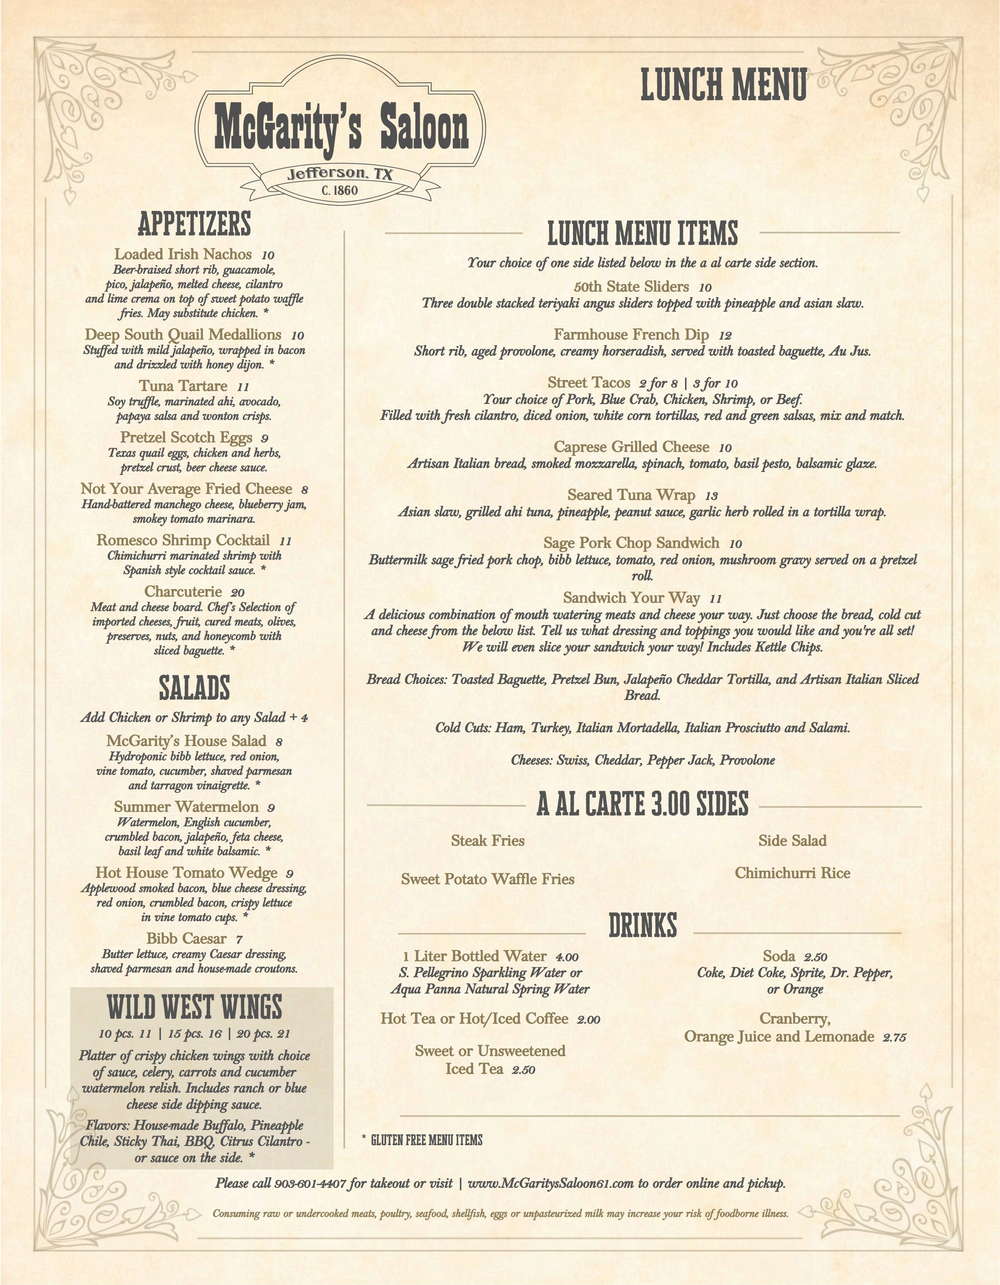 McGarity_s_Lunch_Menu_page_1.png